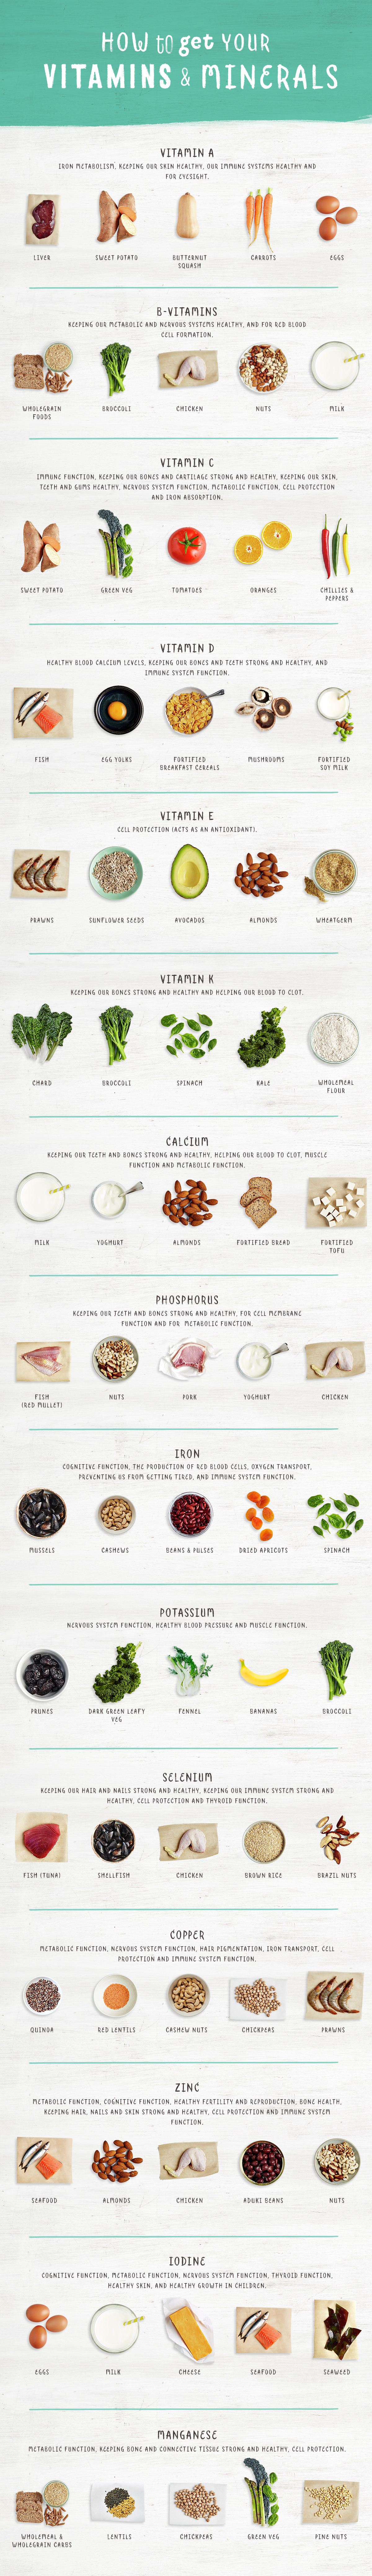 How To Get Your Vitamins And Minerals